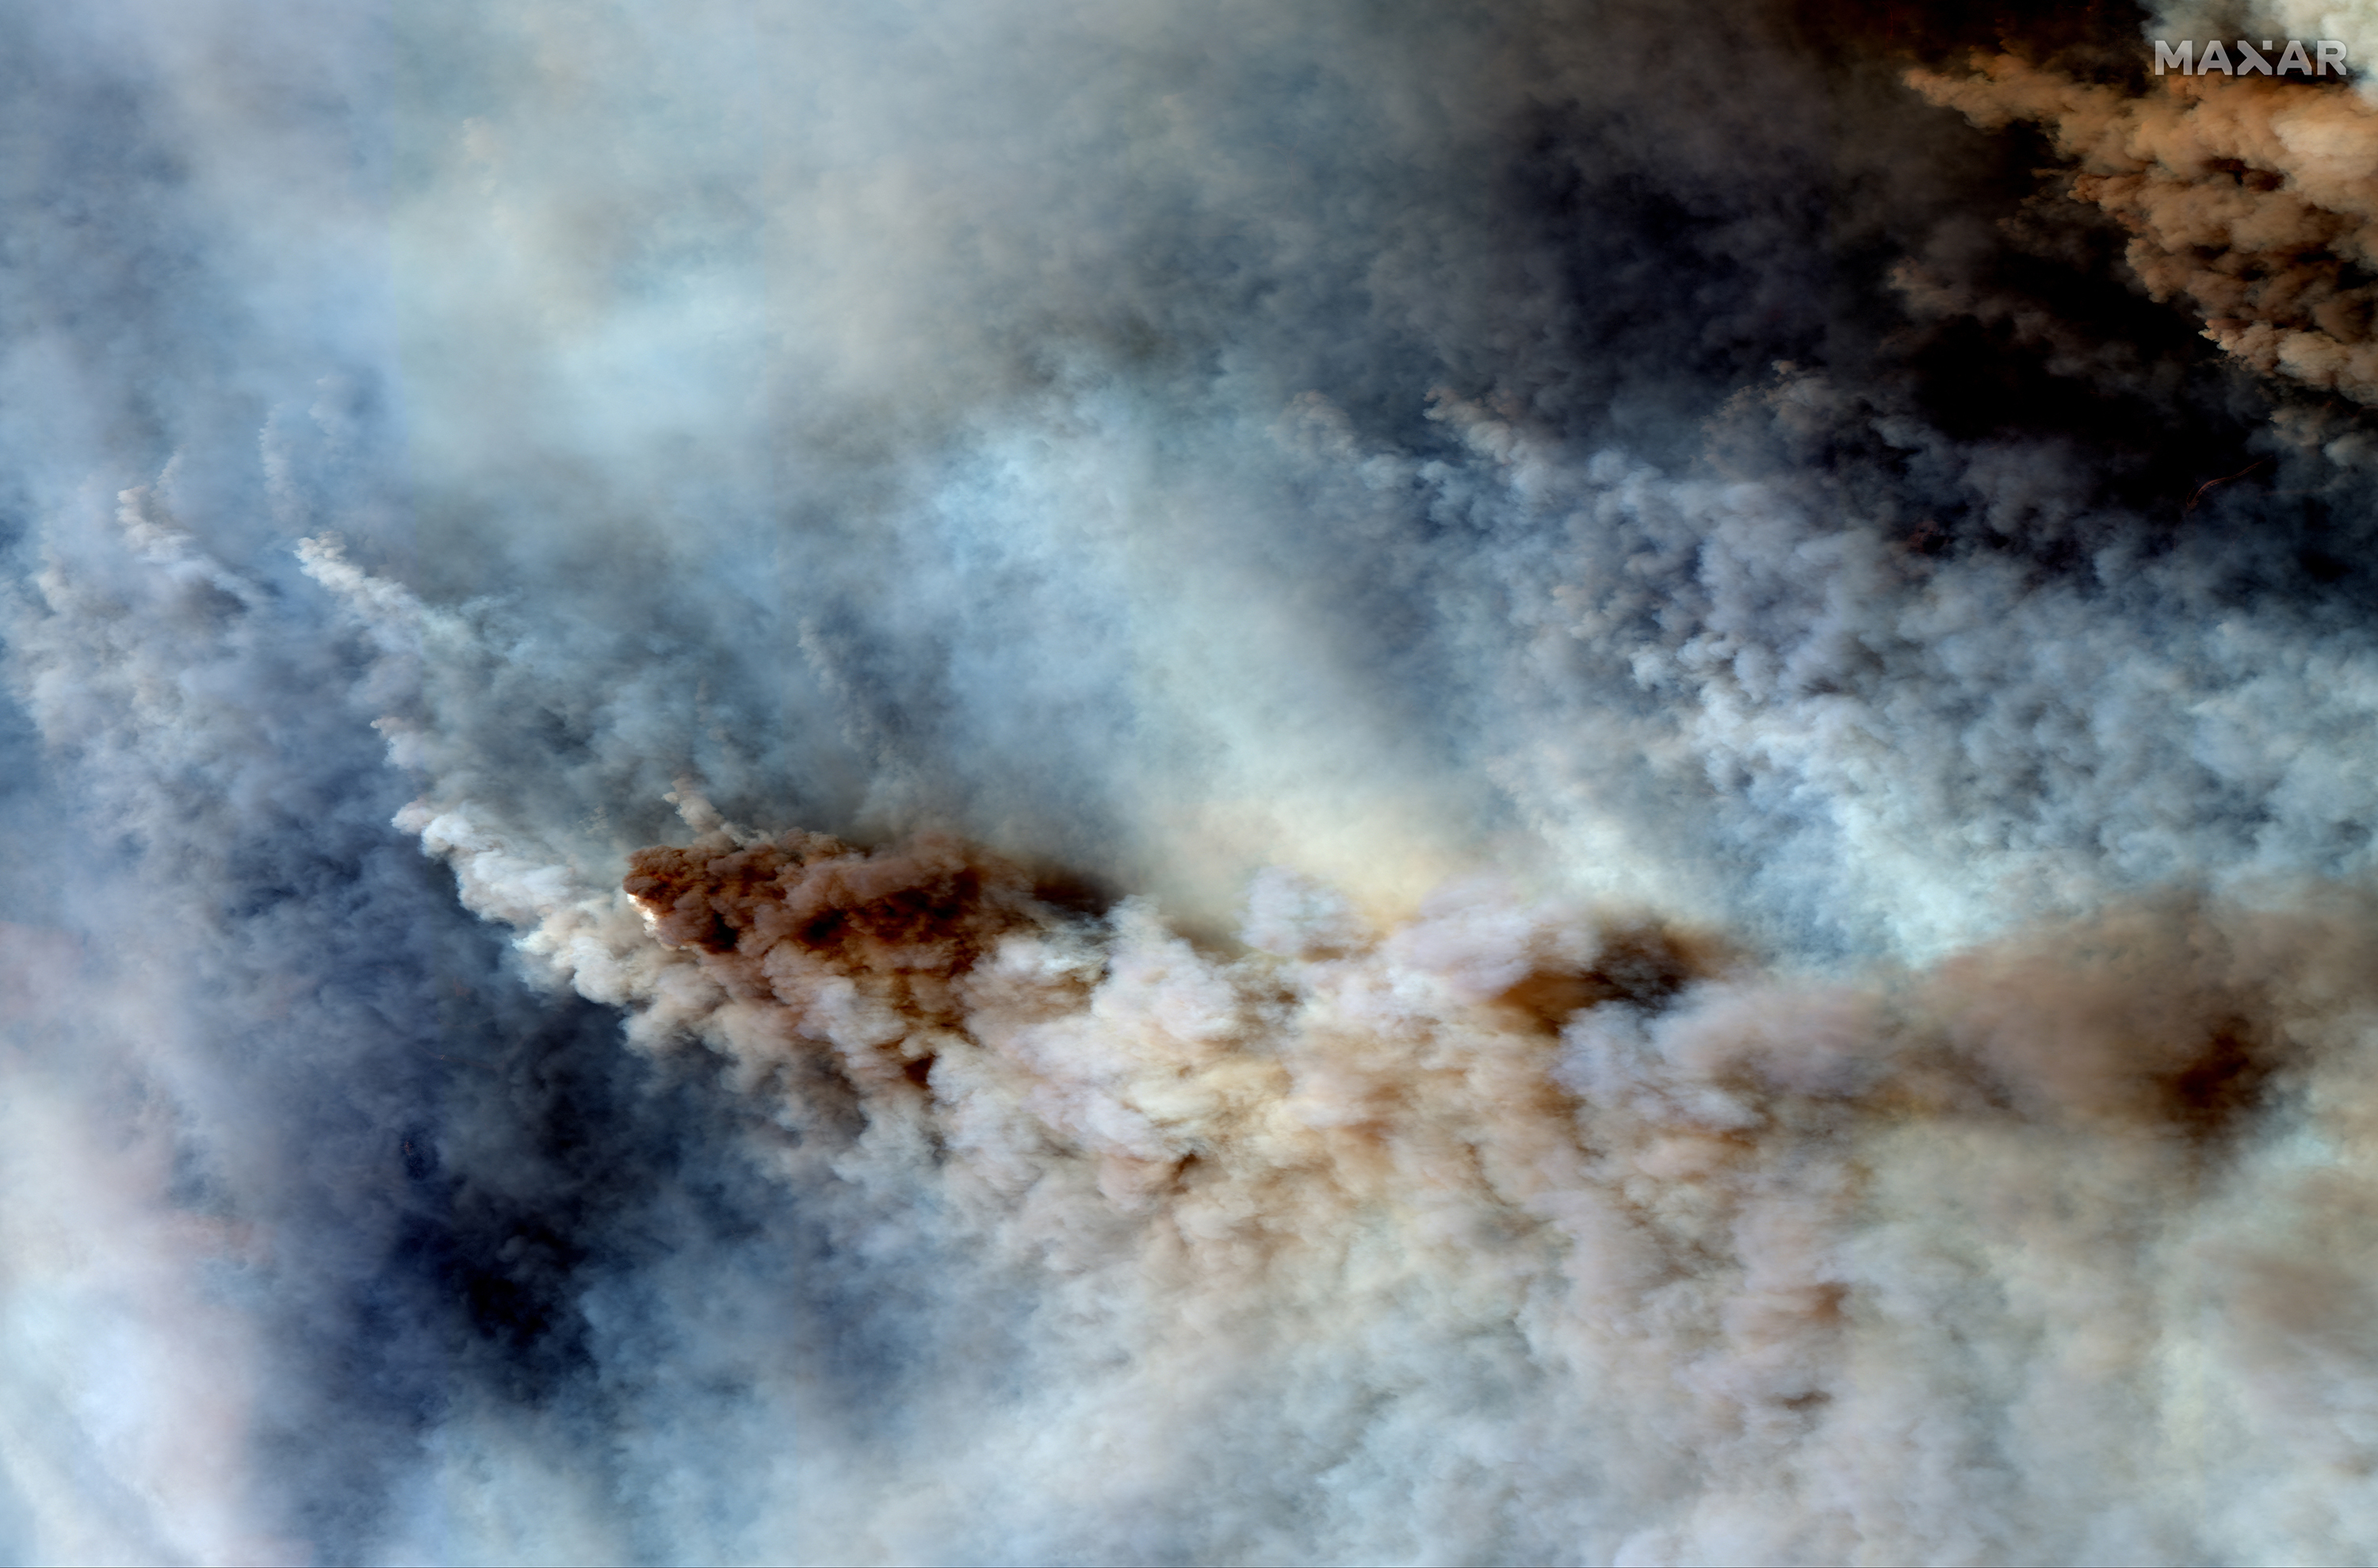 Cooler weather brings respite in Australian wildfire crisis